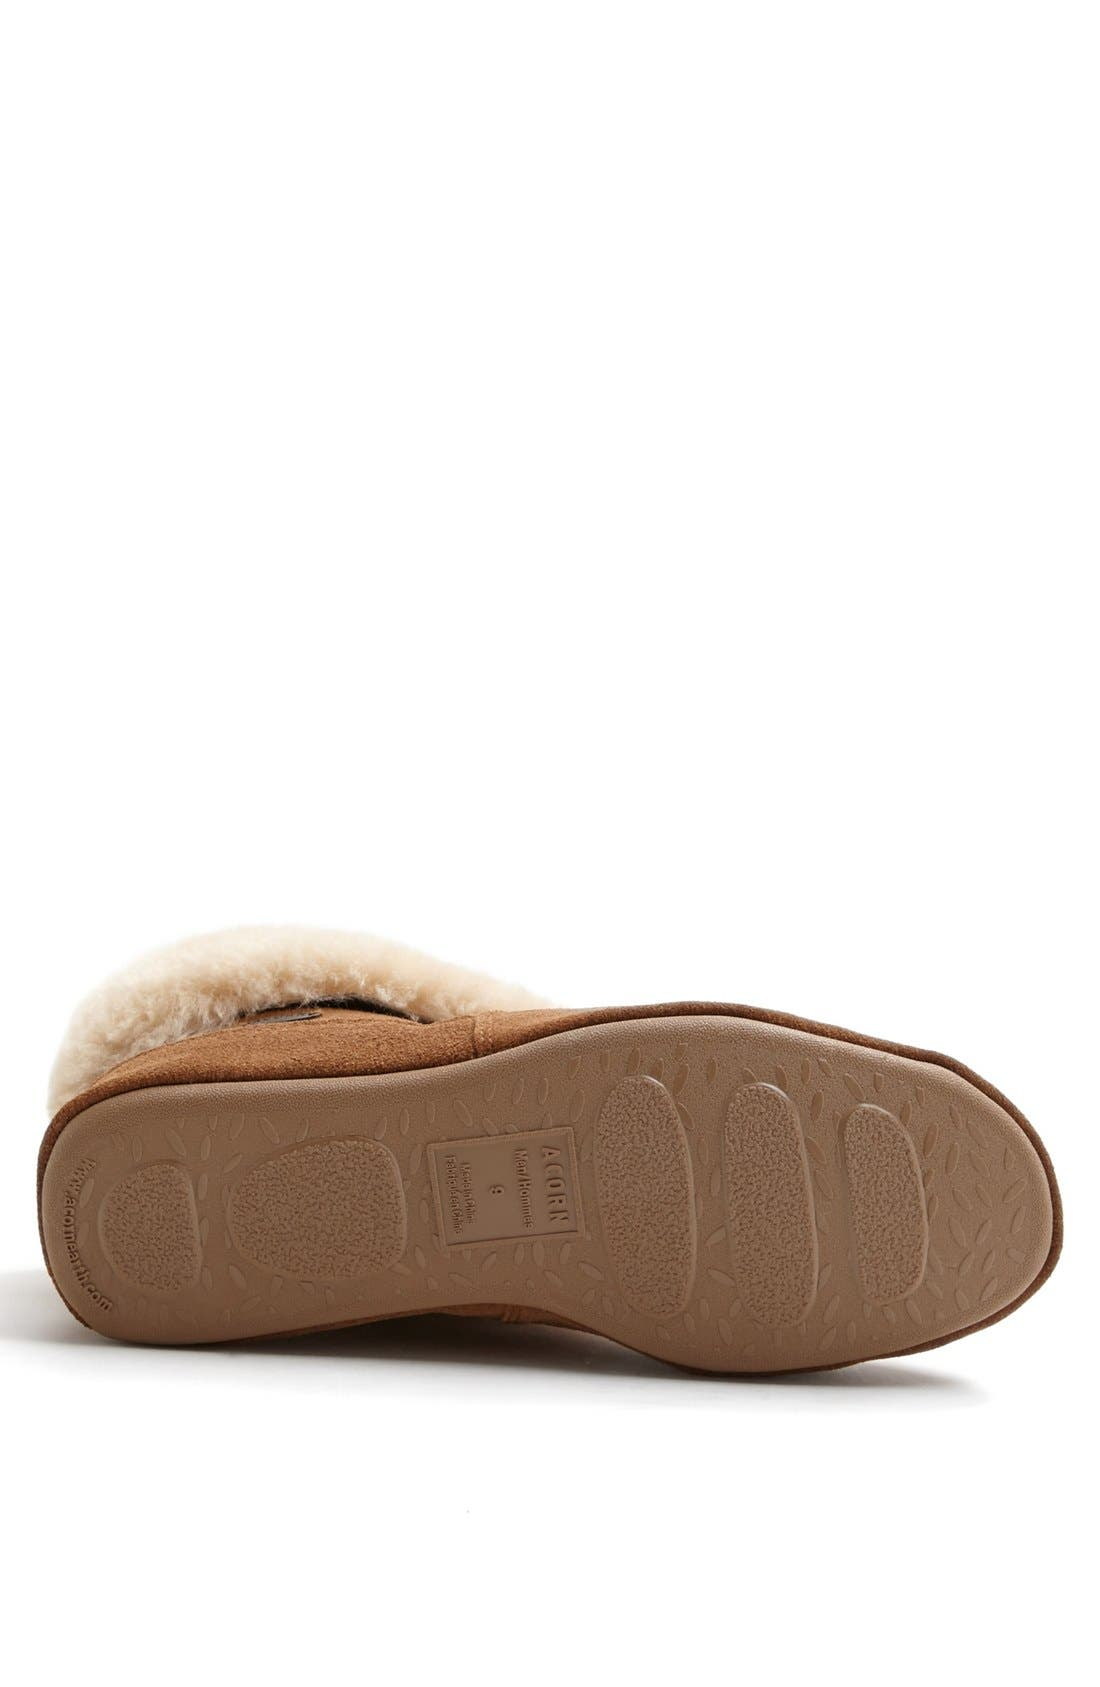 Genuine Sheepskin Slipper,                             Alternate thumbnail 2, color,                             WALNUT